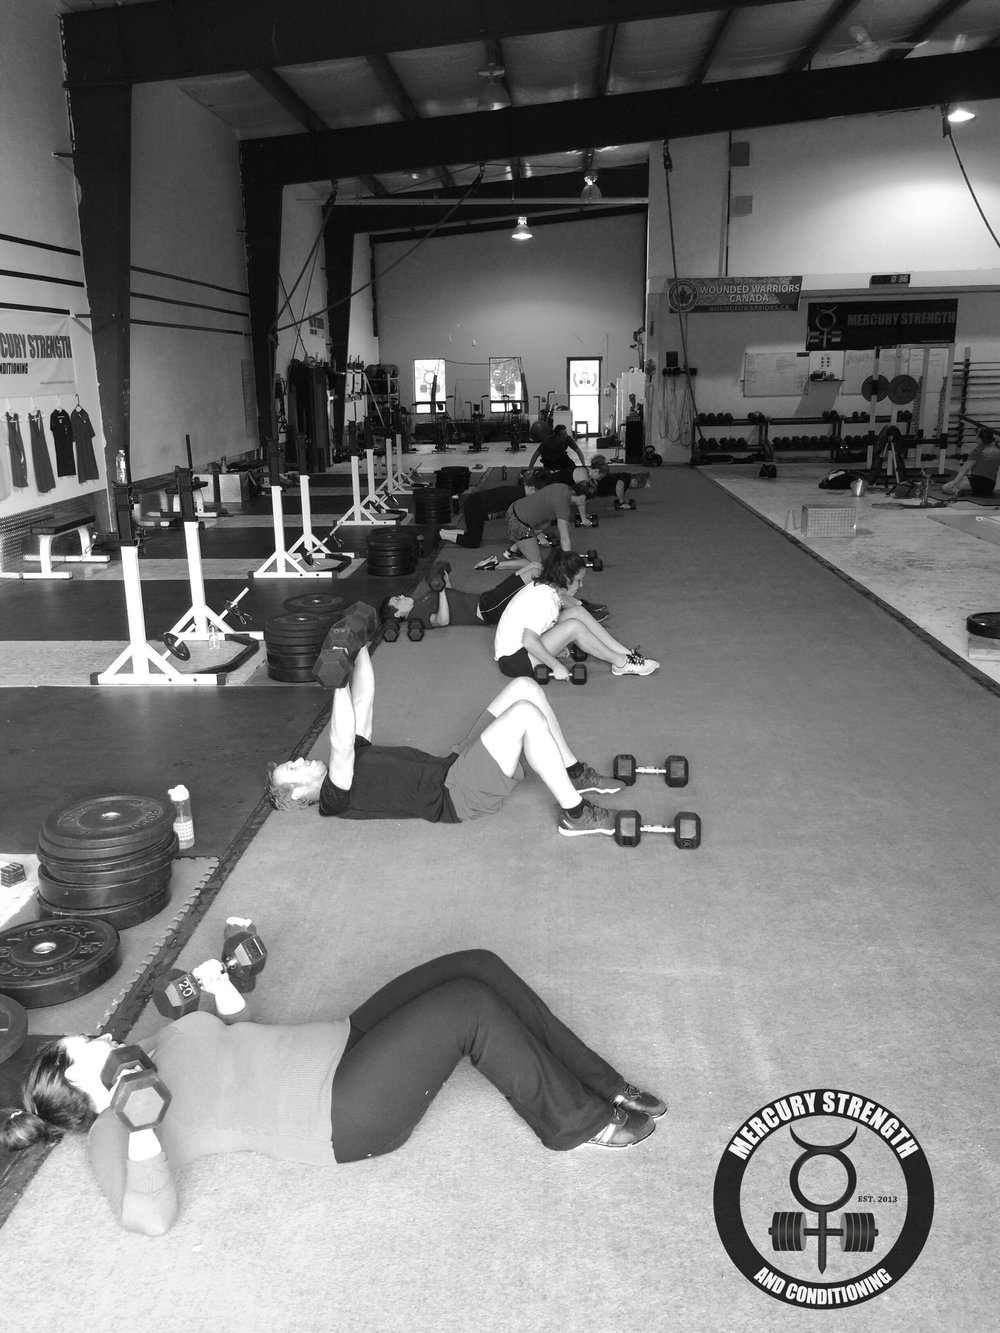 A busy 16:45 session with some DB floor presses